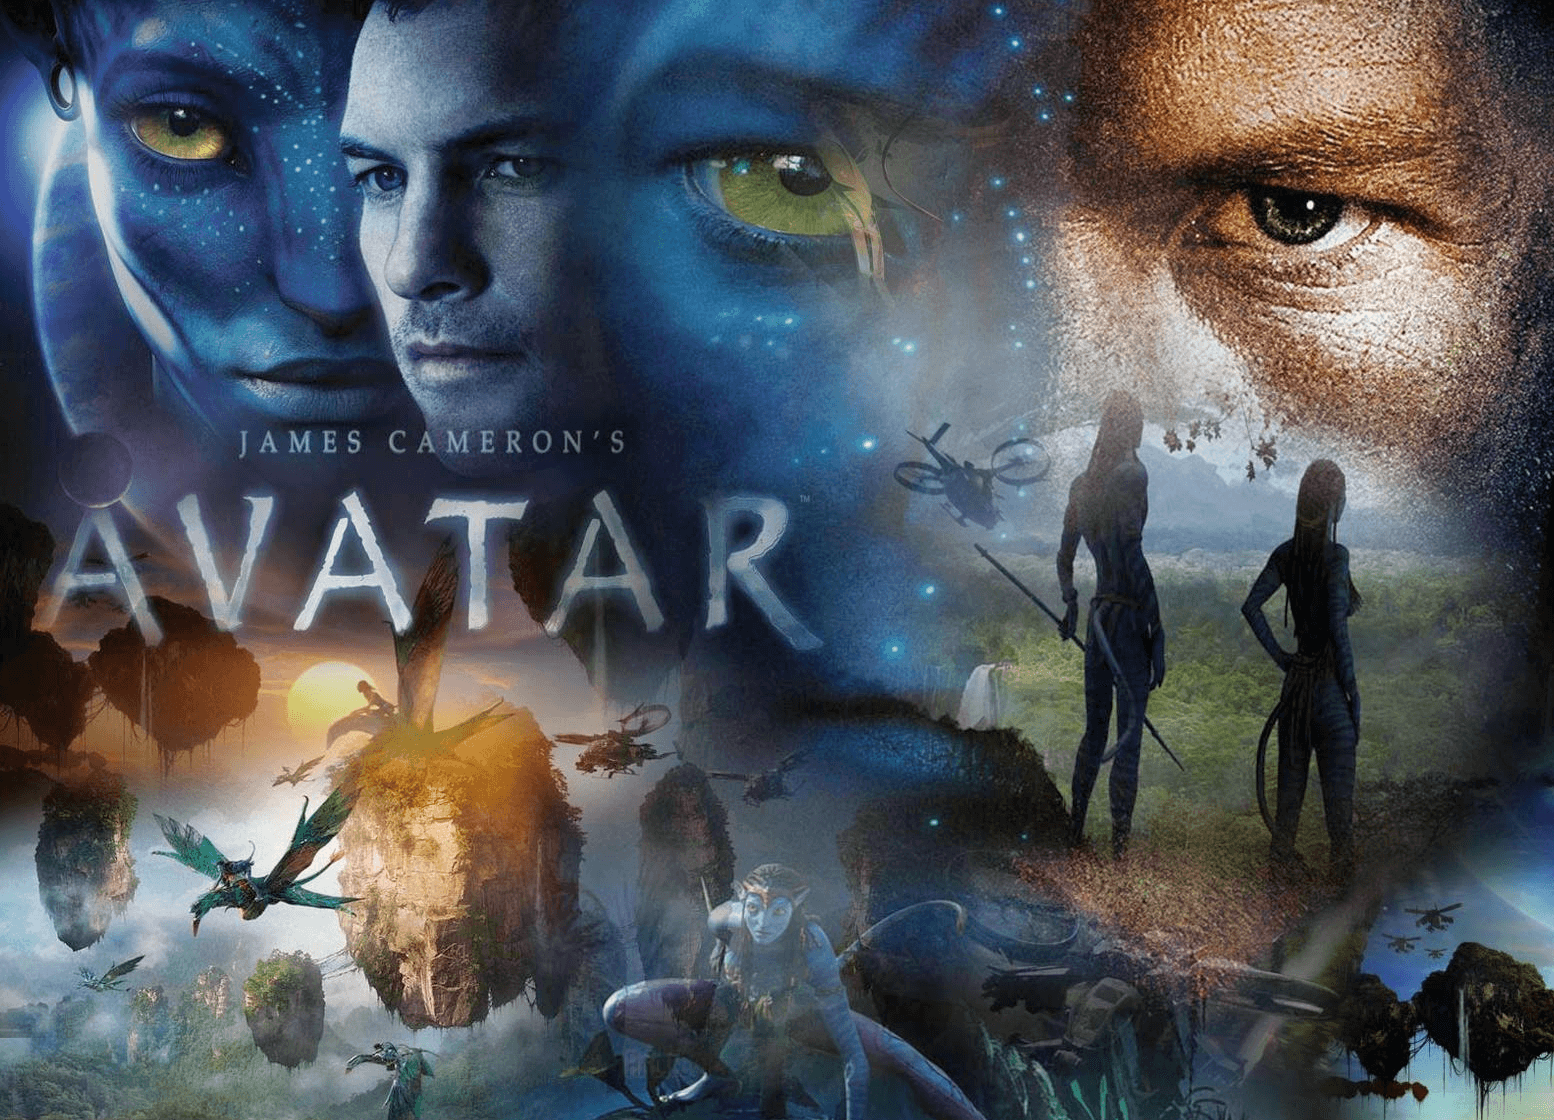 avatar 2 movies - Avatar 2: James Cameron teases the progress of the project and the next films